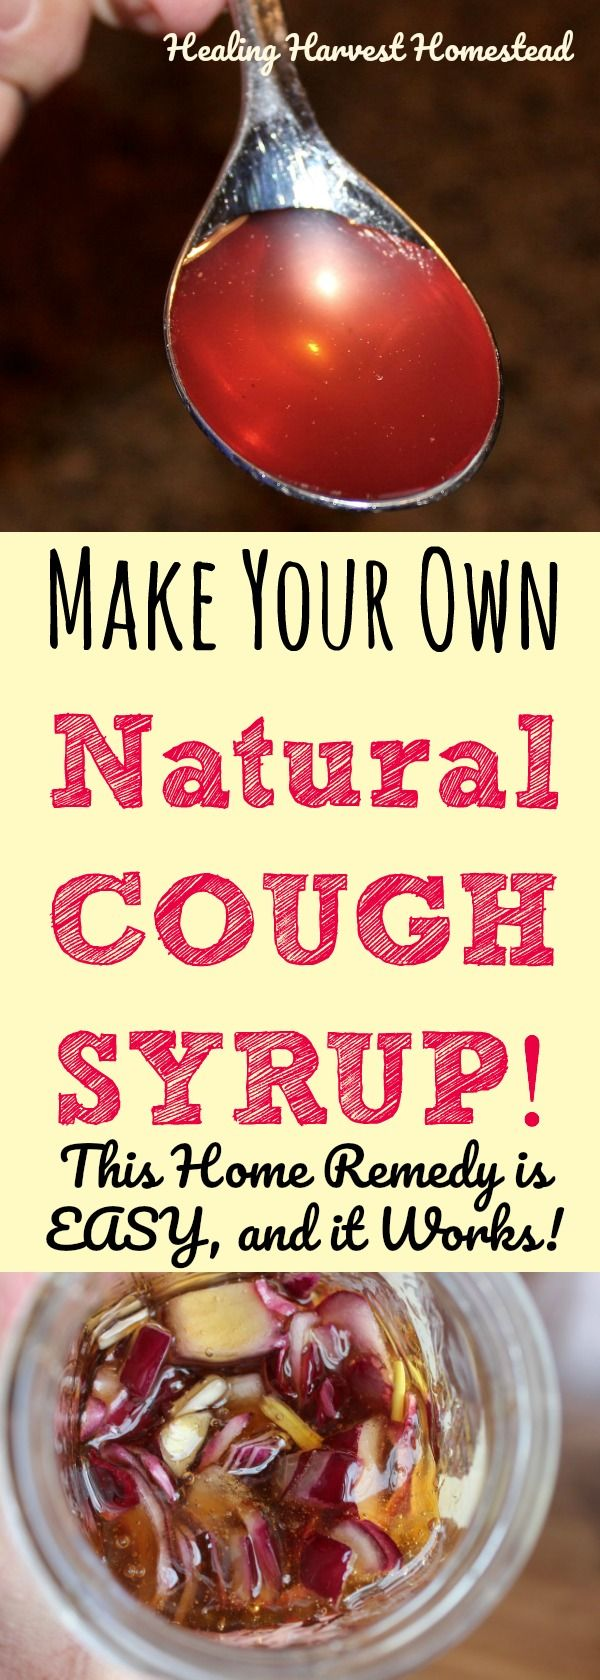 DRAT! You got a cough with that cold? Here is a recipe for a natural cough syrup you can make easily with just two ingredients! And....IT WORKS! Find out how to make your own natural cough syrup with this recipe. This home remedy works for coughs FAST, and it's easy to make.